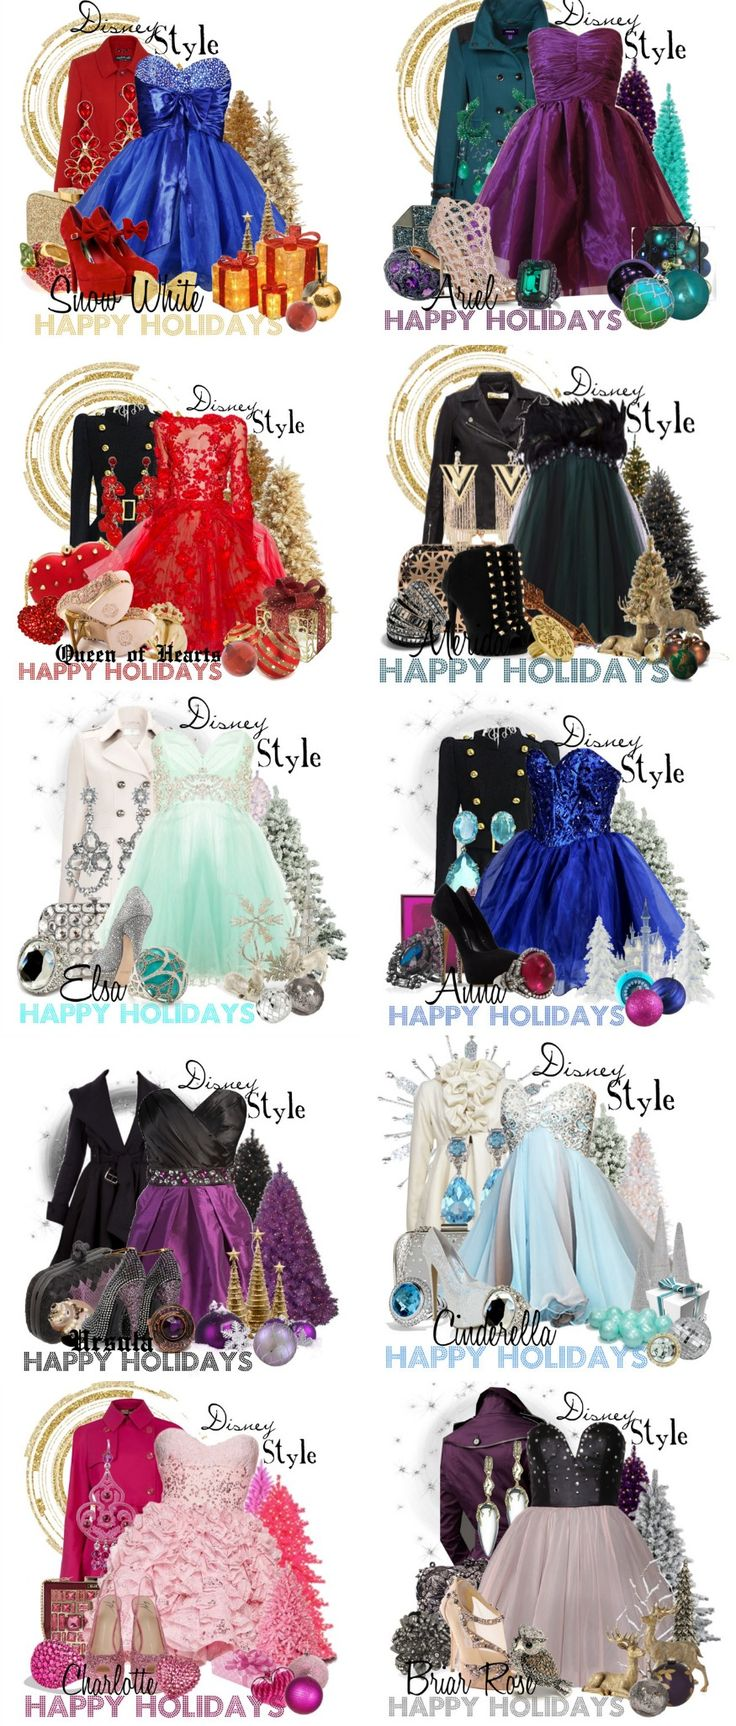 Babble Article featuring Disney Style by missm26 on polyvore 16 Festive Holiday Party Outfits Inspired by Disney Characters